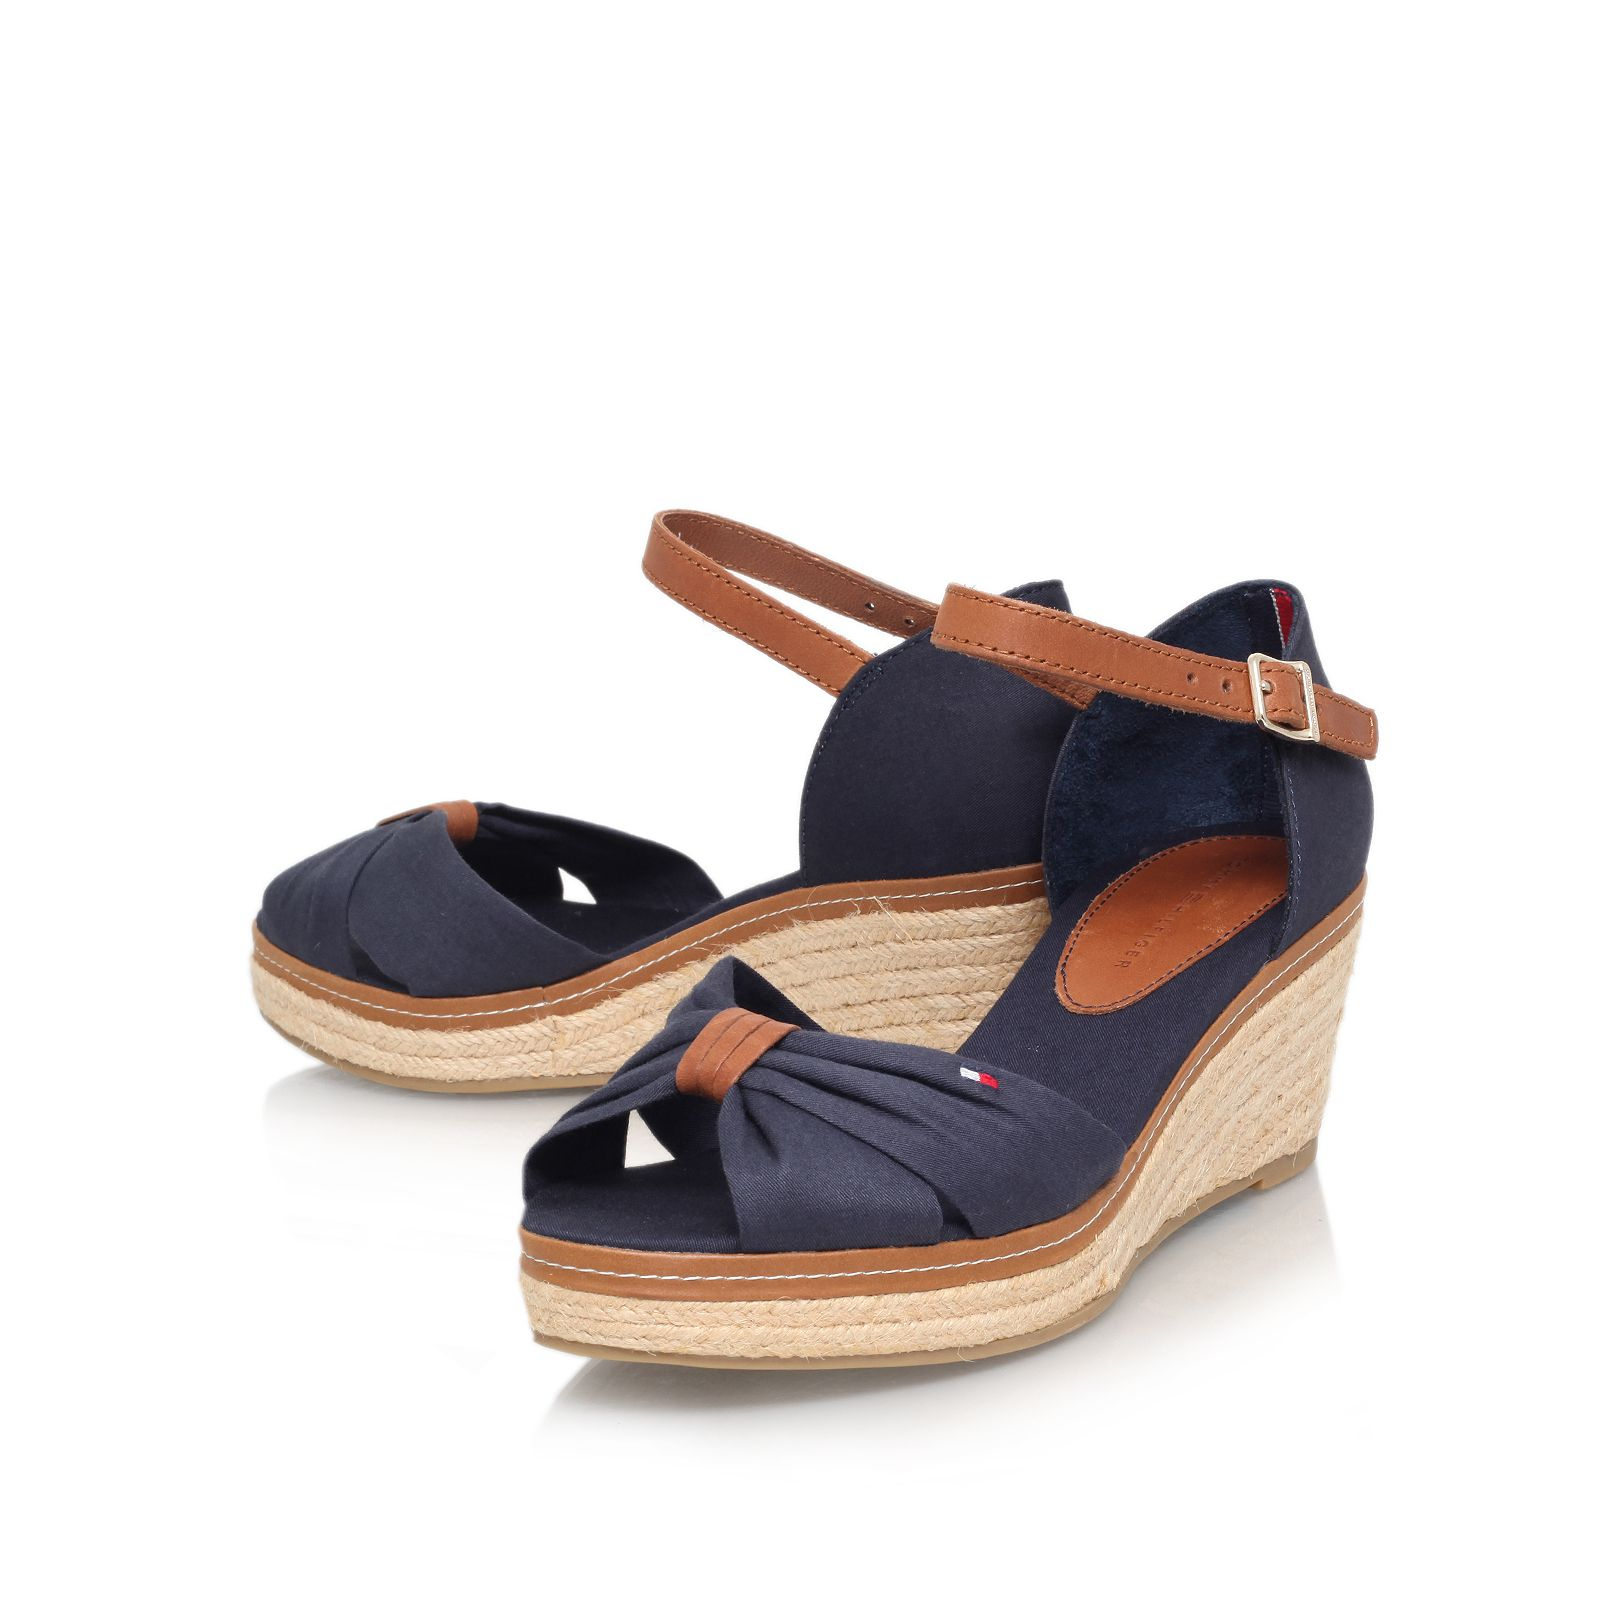 tommy hilfiger elba 19d mid wedge heel sandals in blue lyst. Black Bedroom Furniture Sets. Home Design Ideas